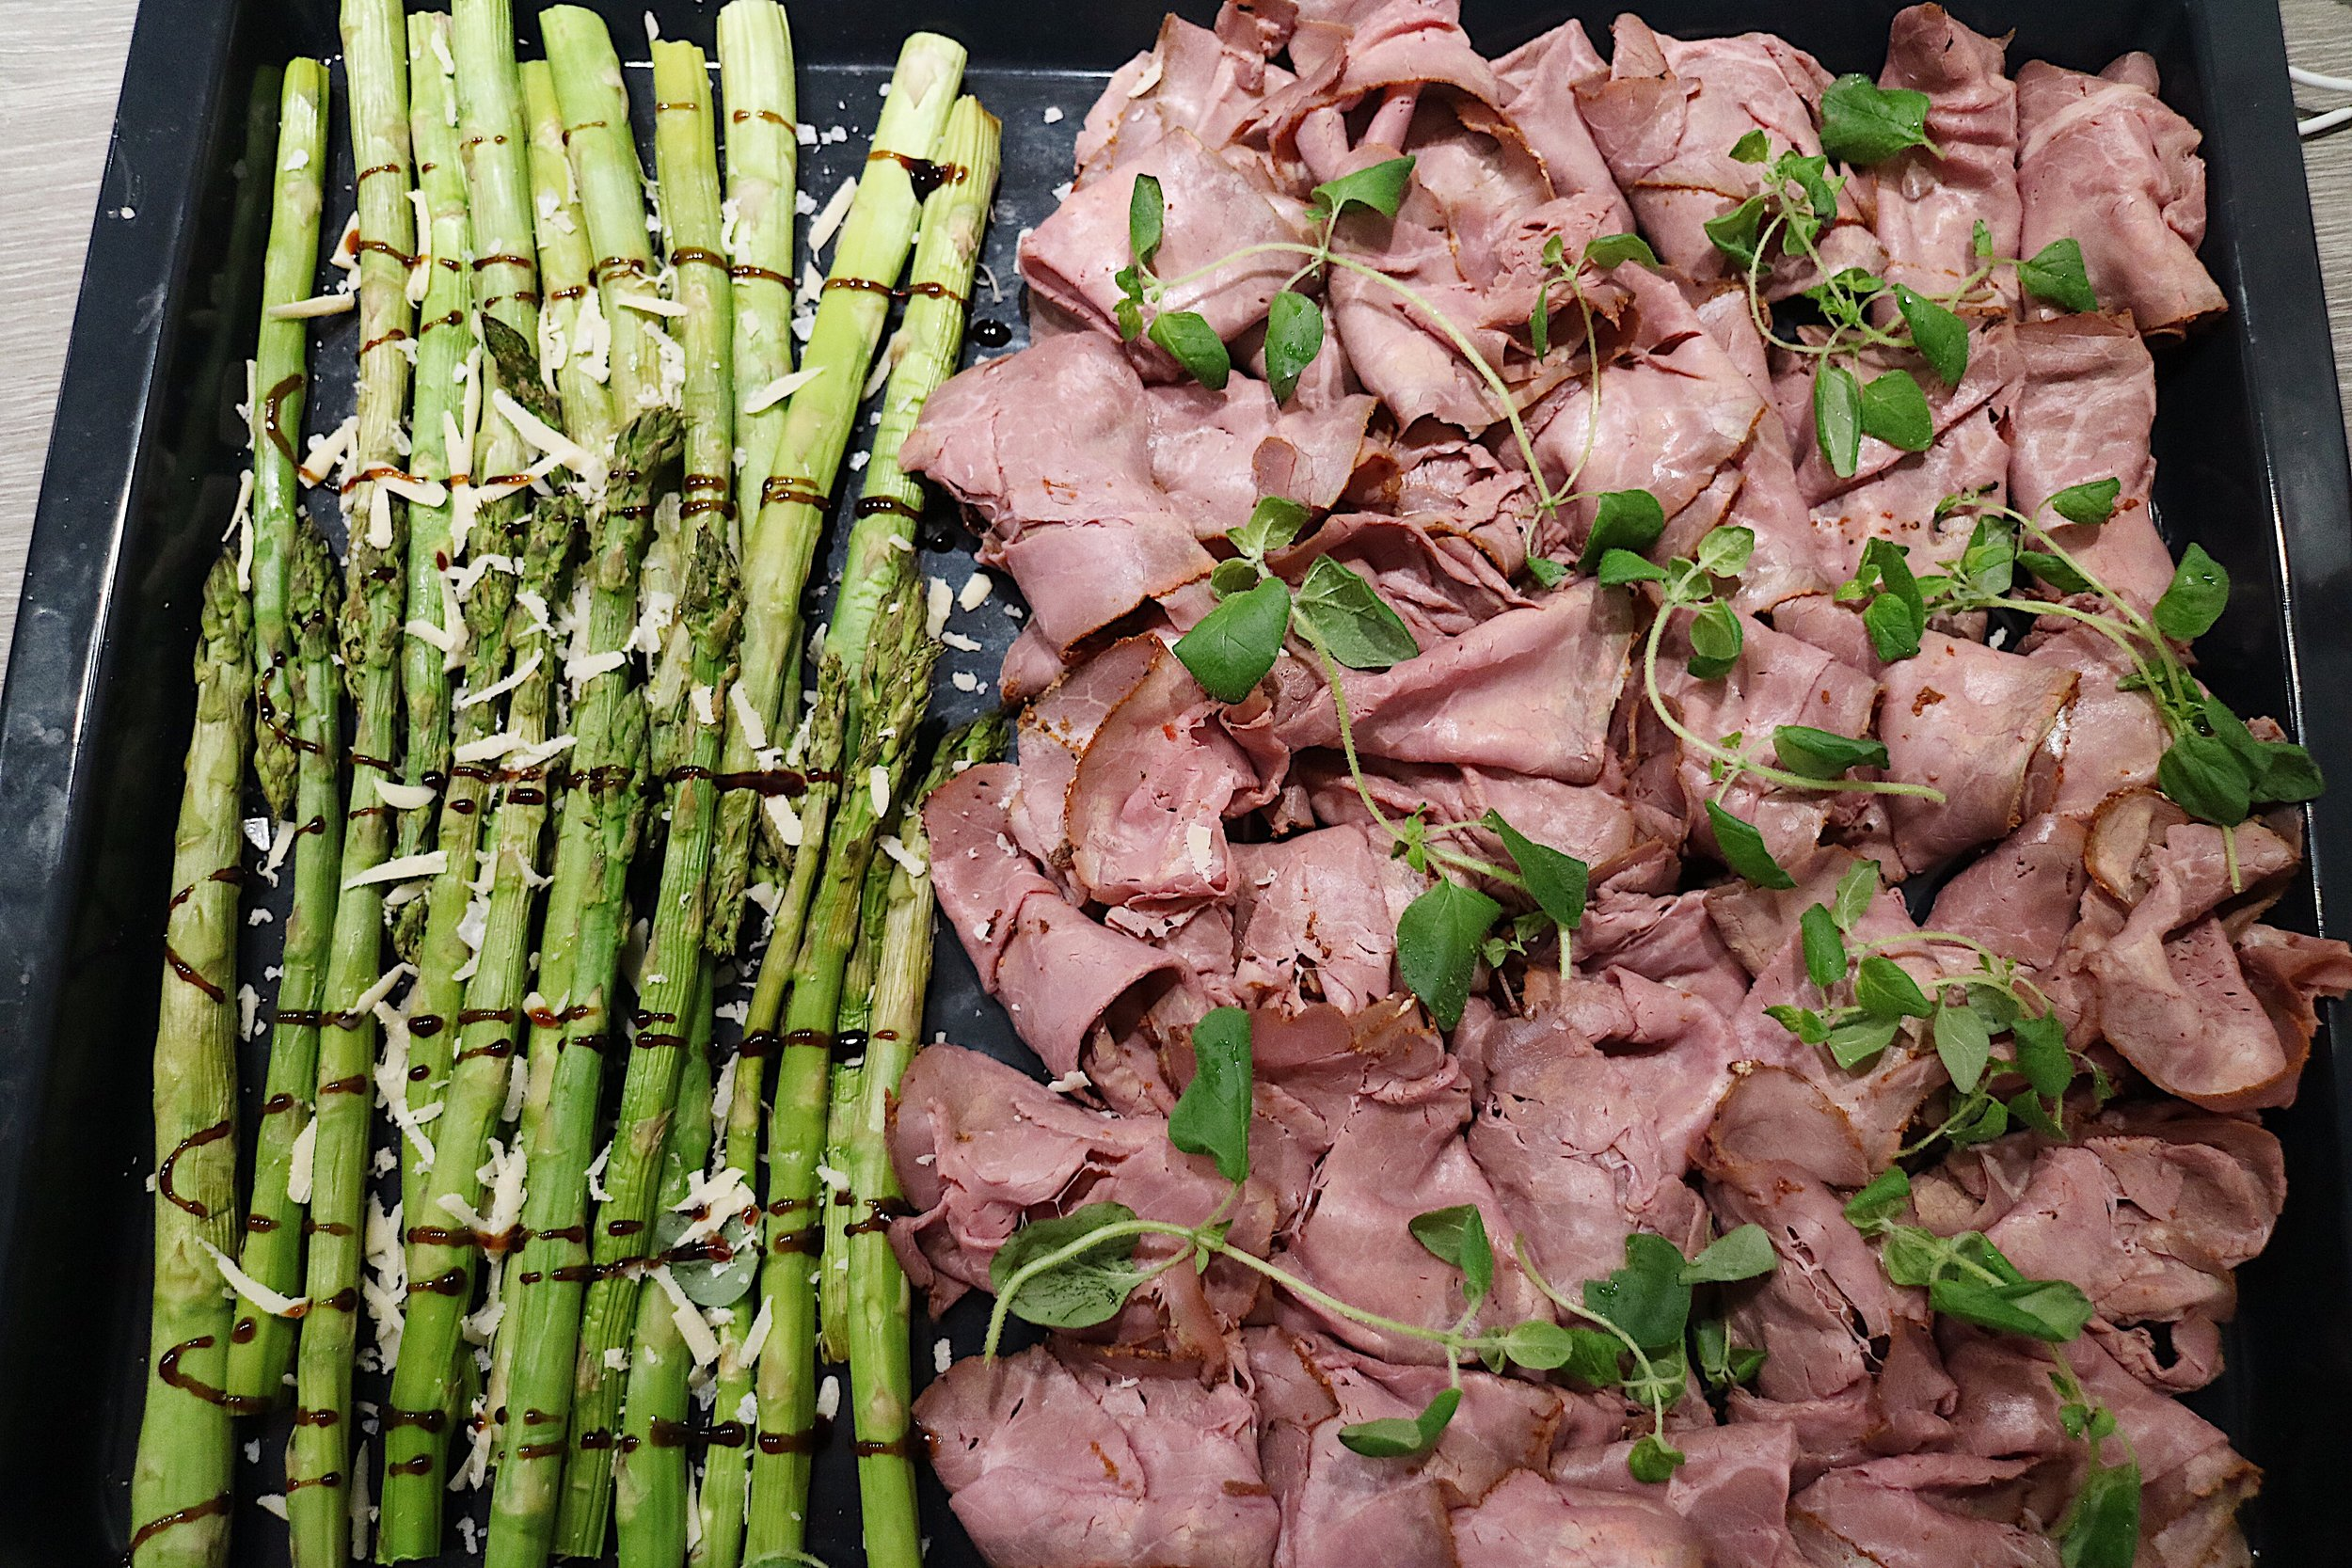 Rosted organic grass fed beef with asparagus, vegan parmesan and balsamico